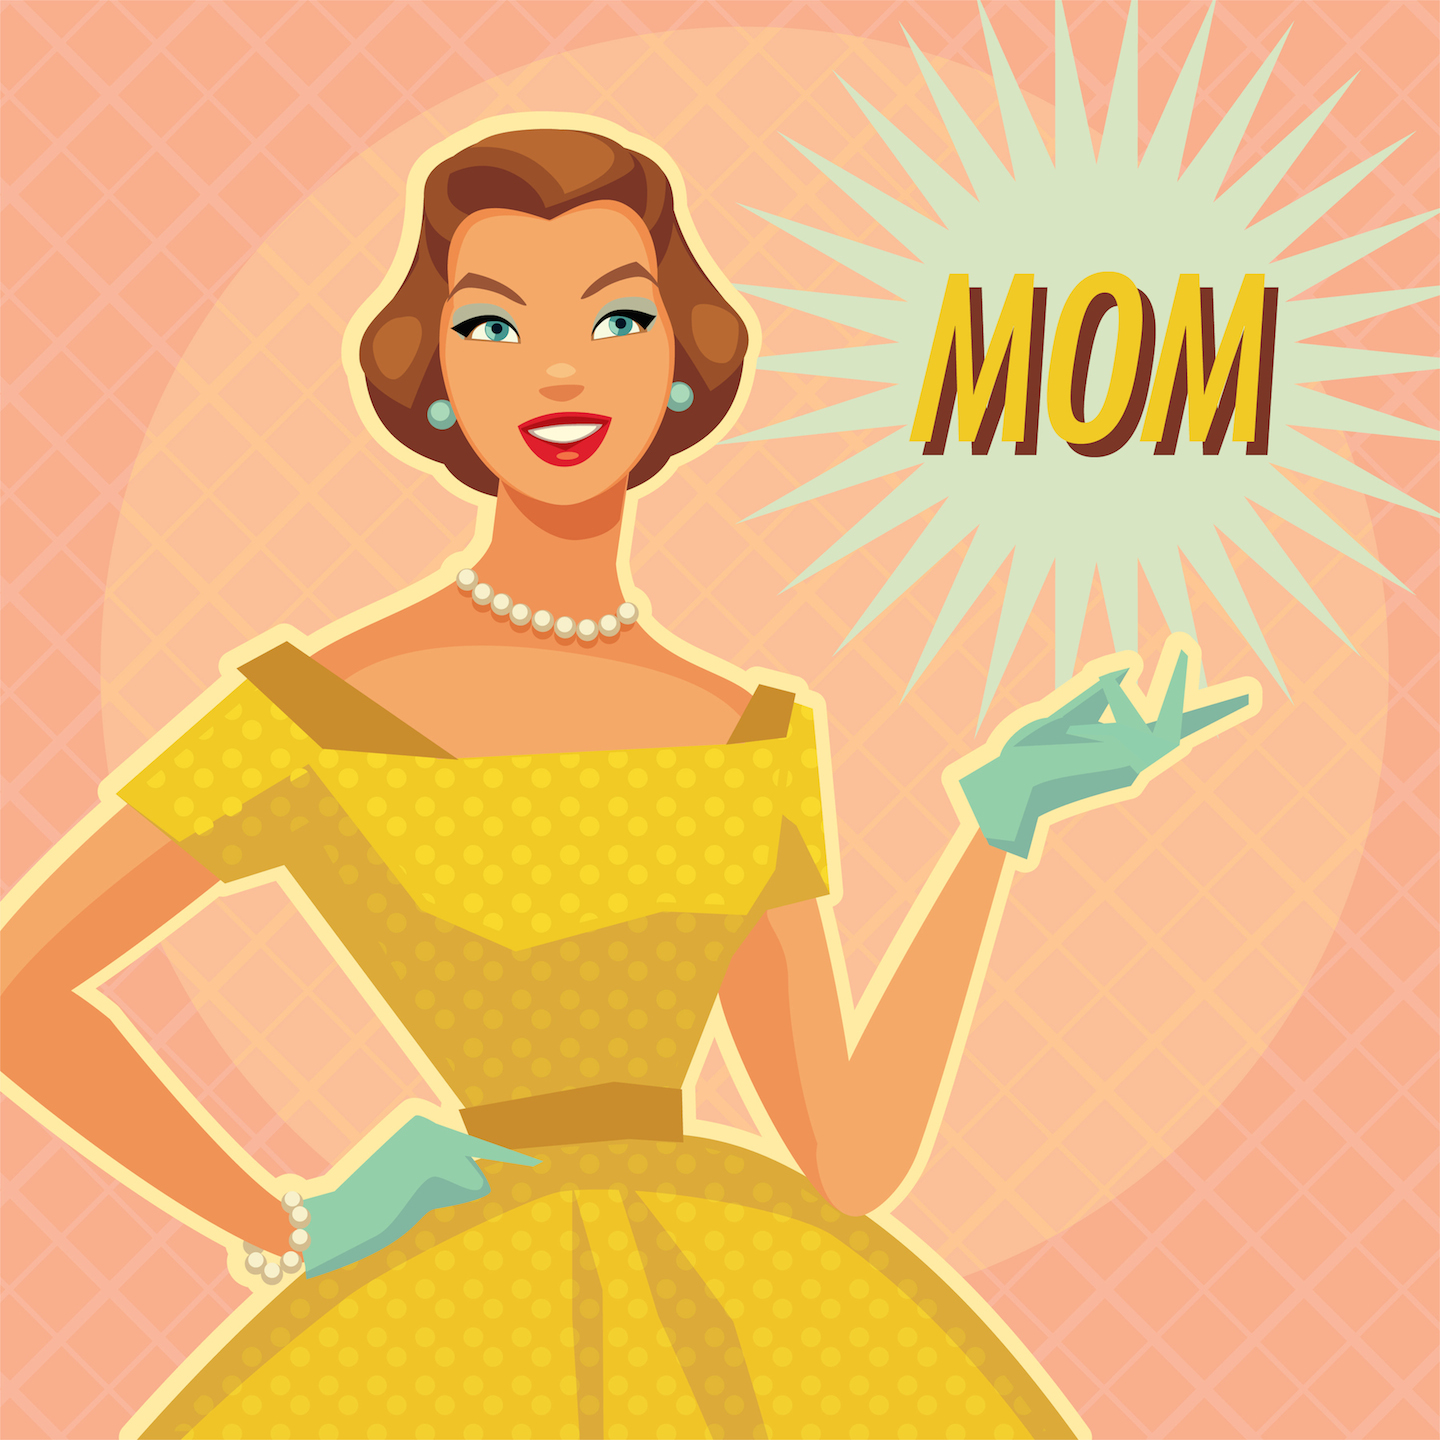 Just some mom-isms to get you through the week